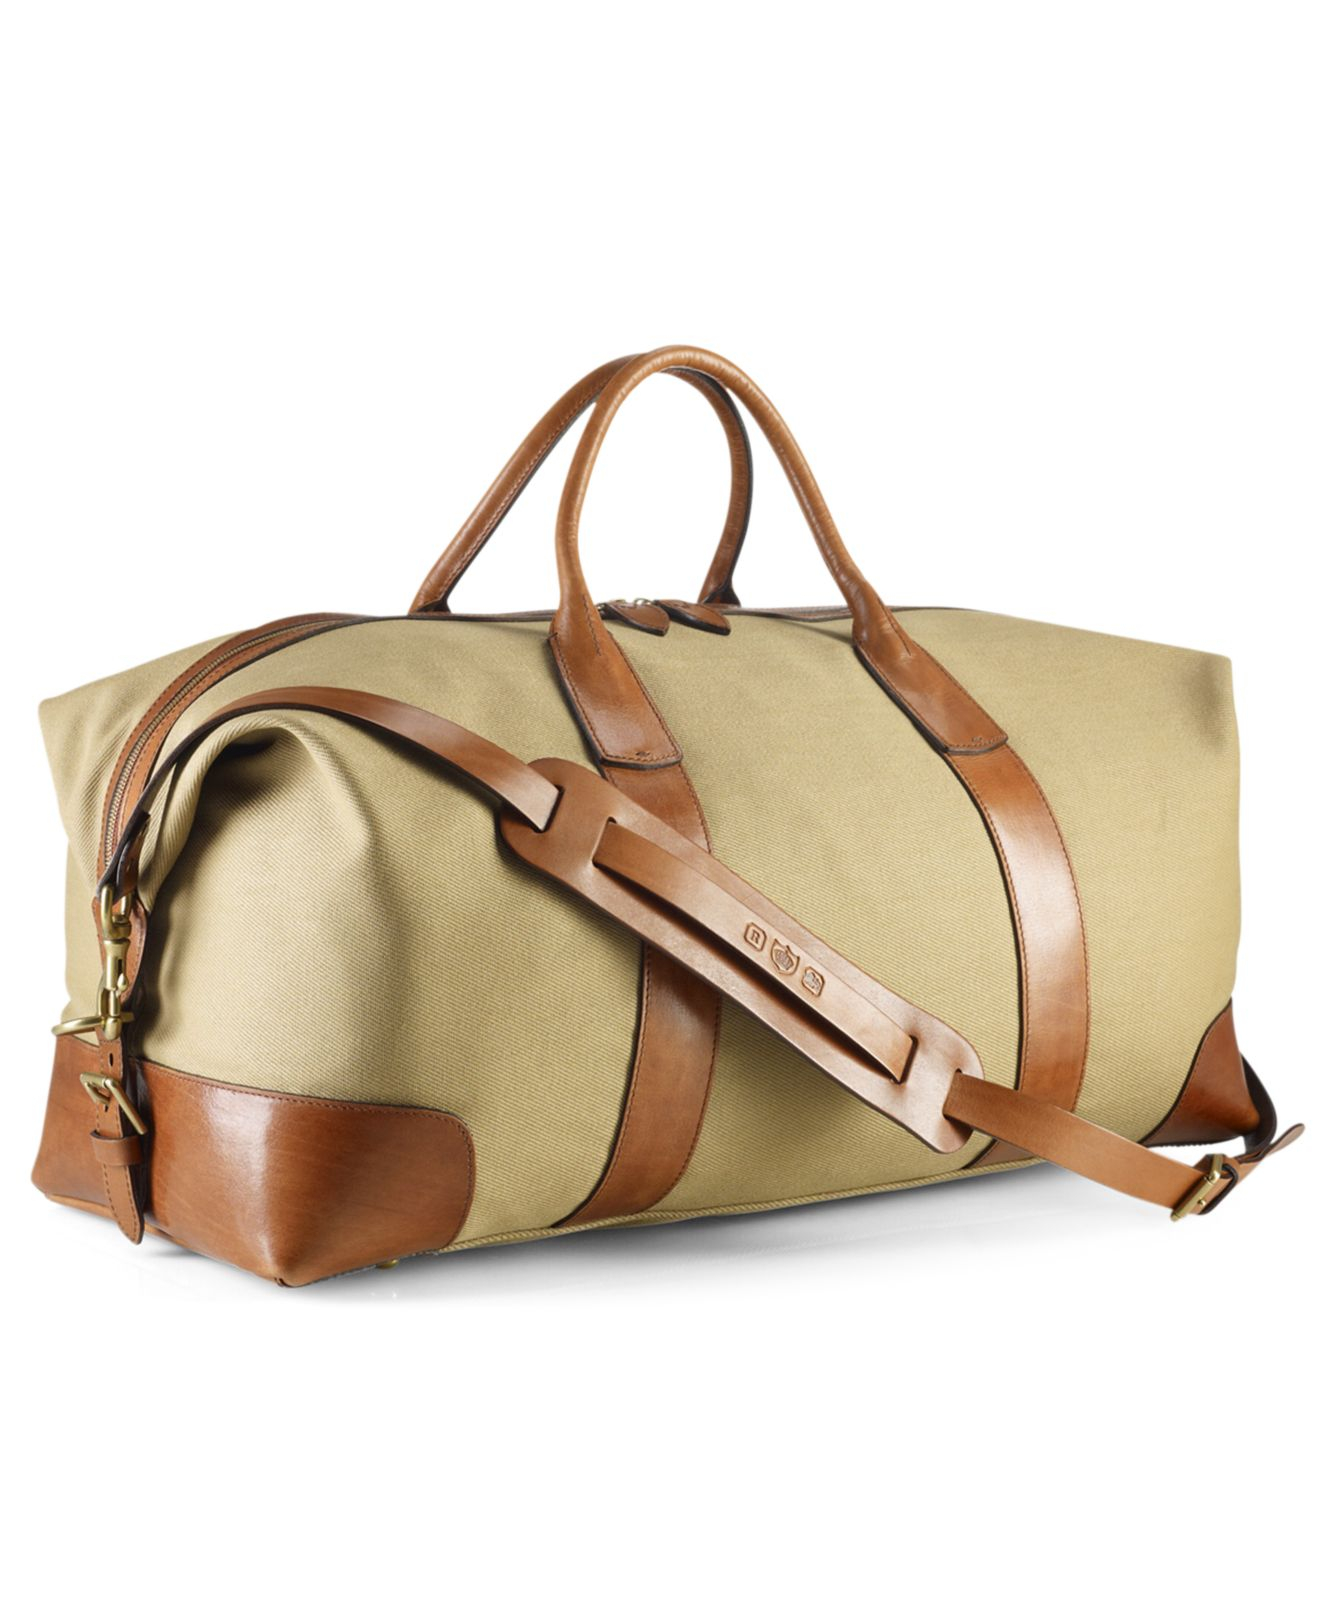 Lyst - Polo Ralph Lauren Core Canvas Duffle Bag in Natural for Men 4258466ede772